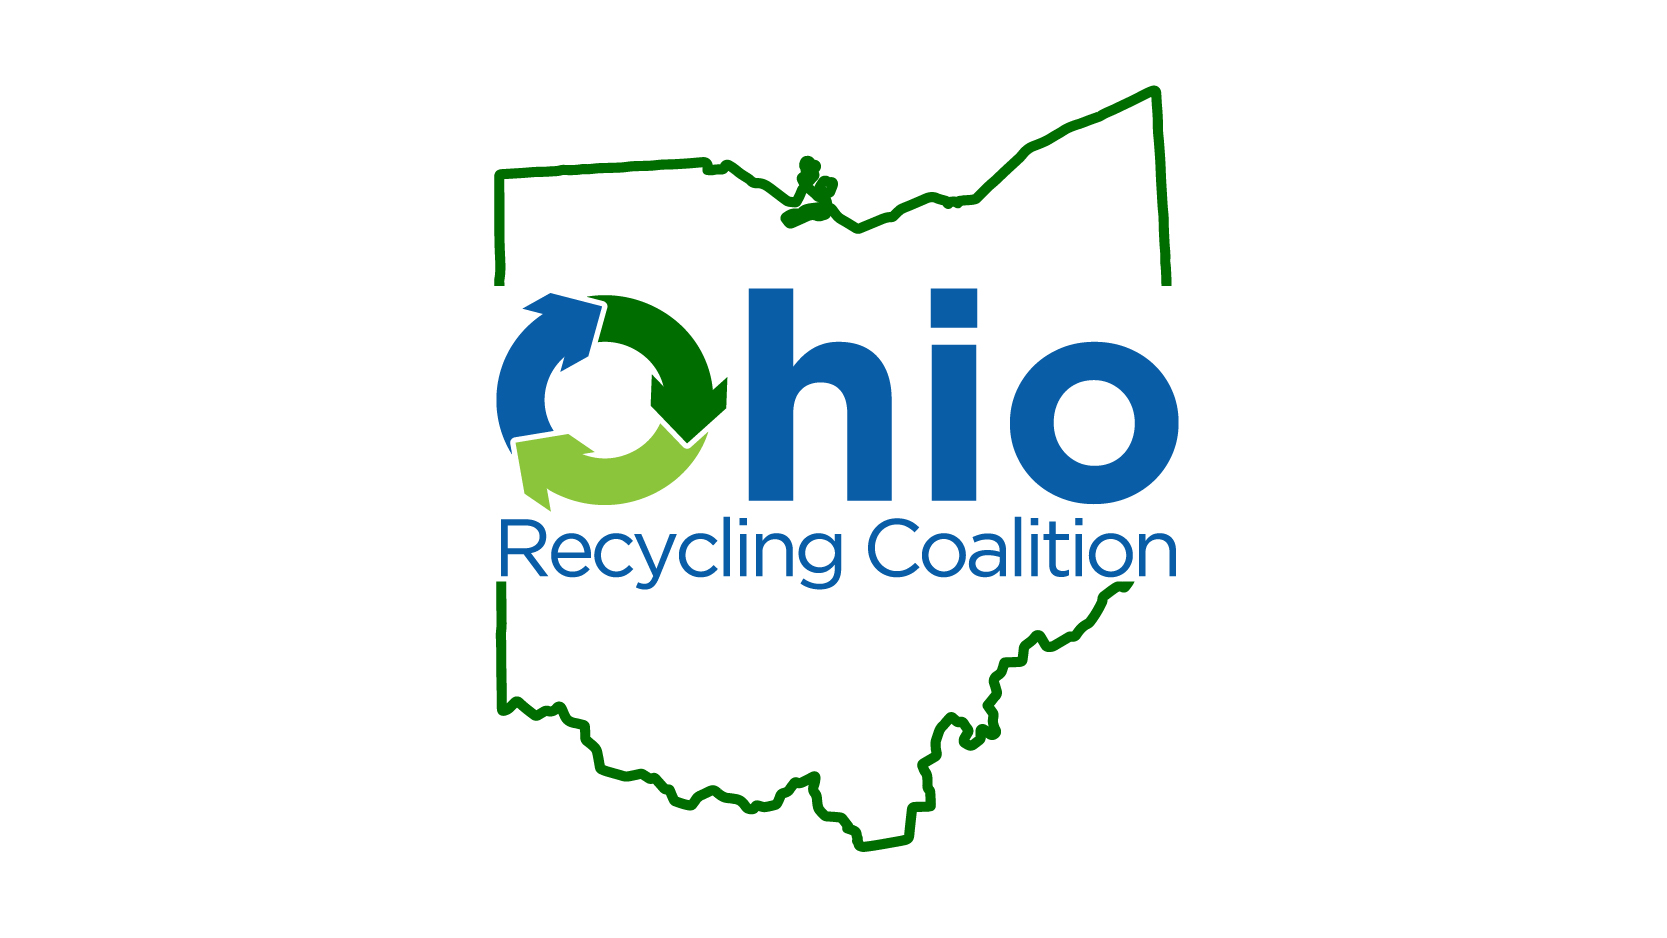 CEO and launch date announced for new nonprofit, The Ohio Recycling Coalition